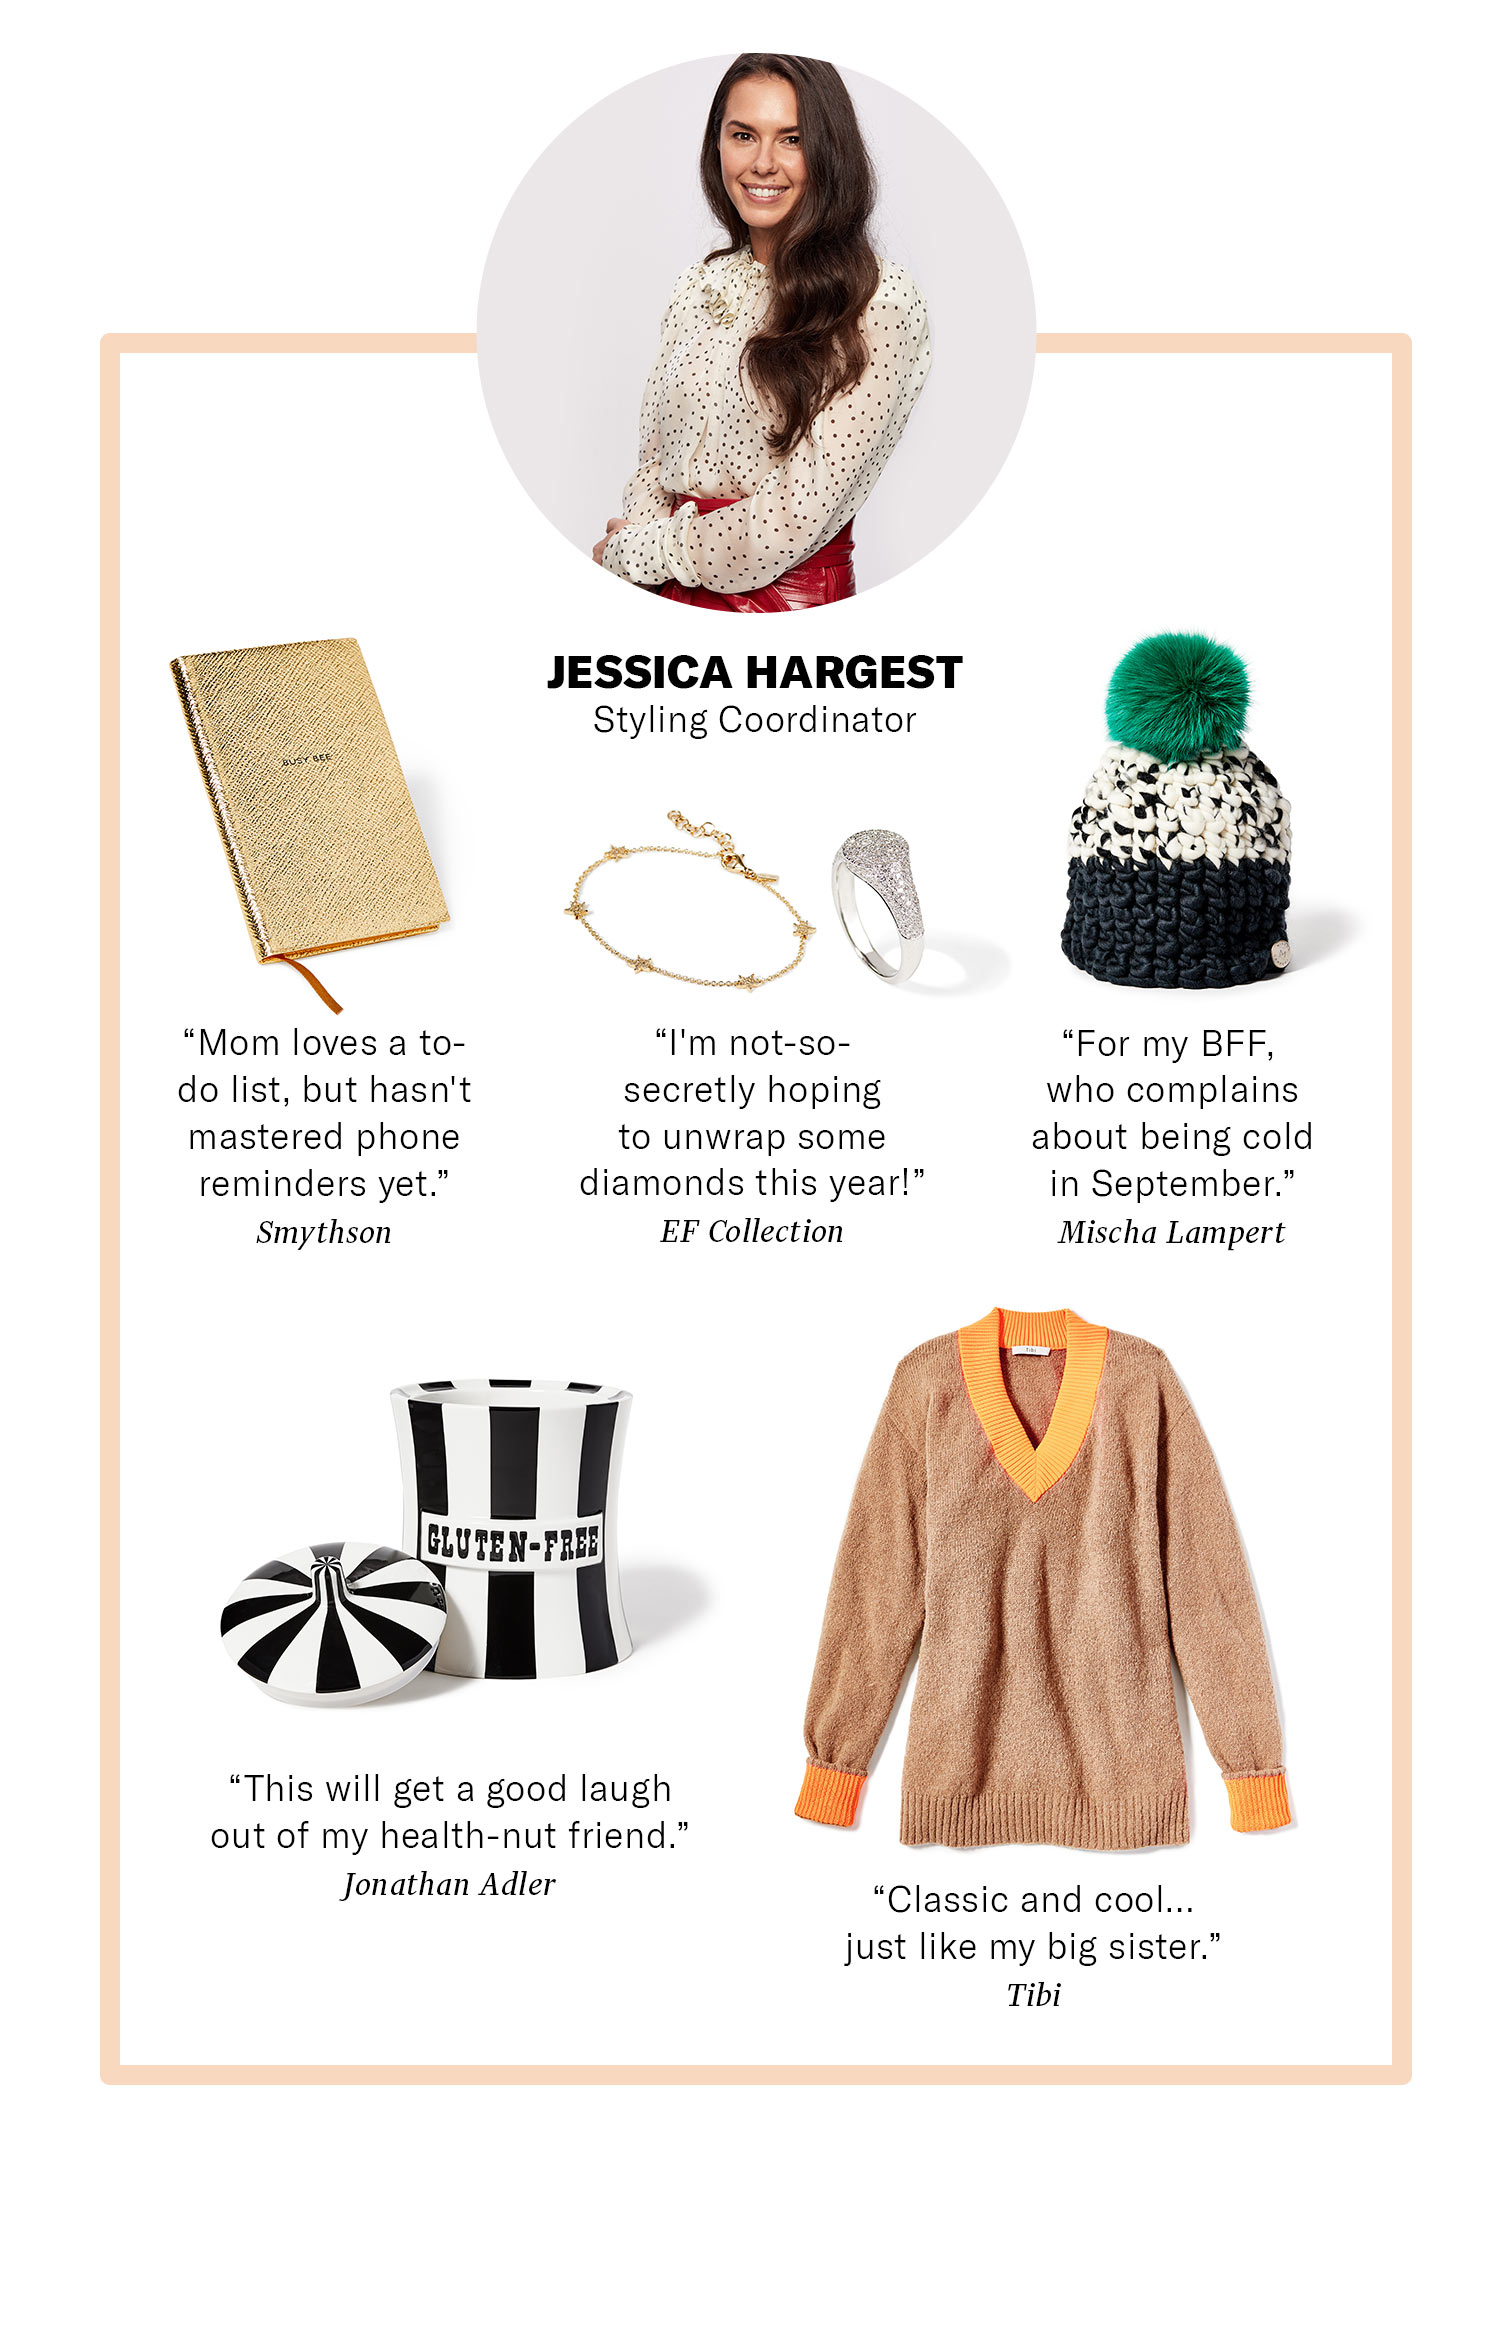 SHOPBOP Styling Coordinator Jessica Hargest Gift Ideas